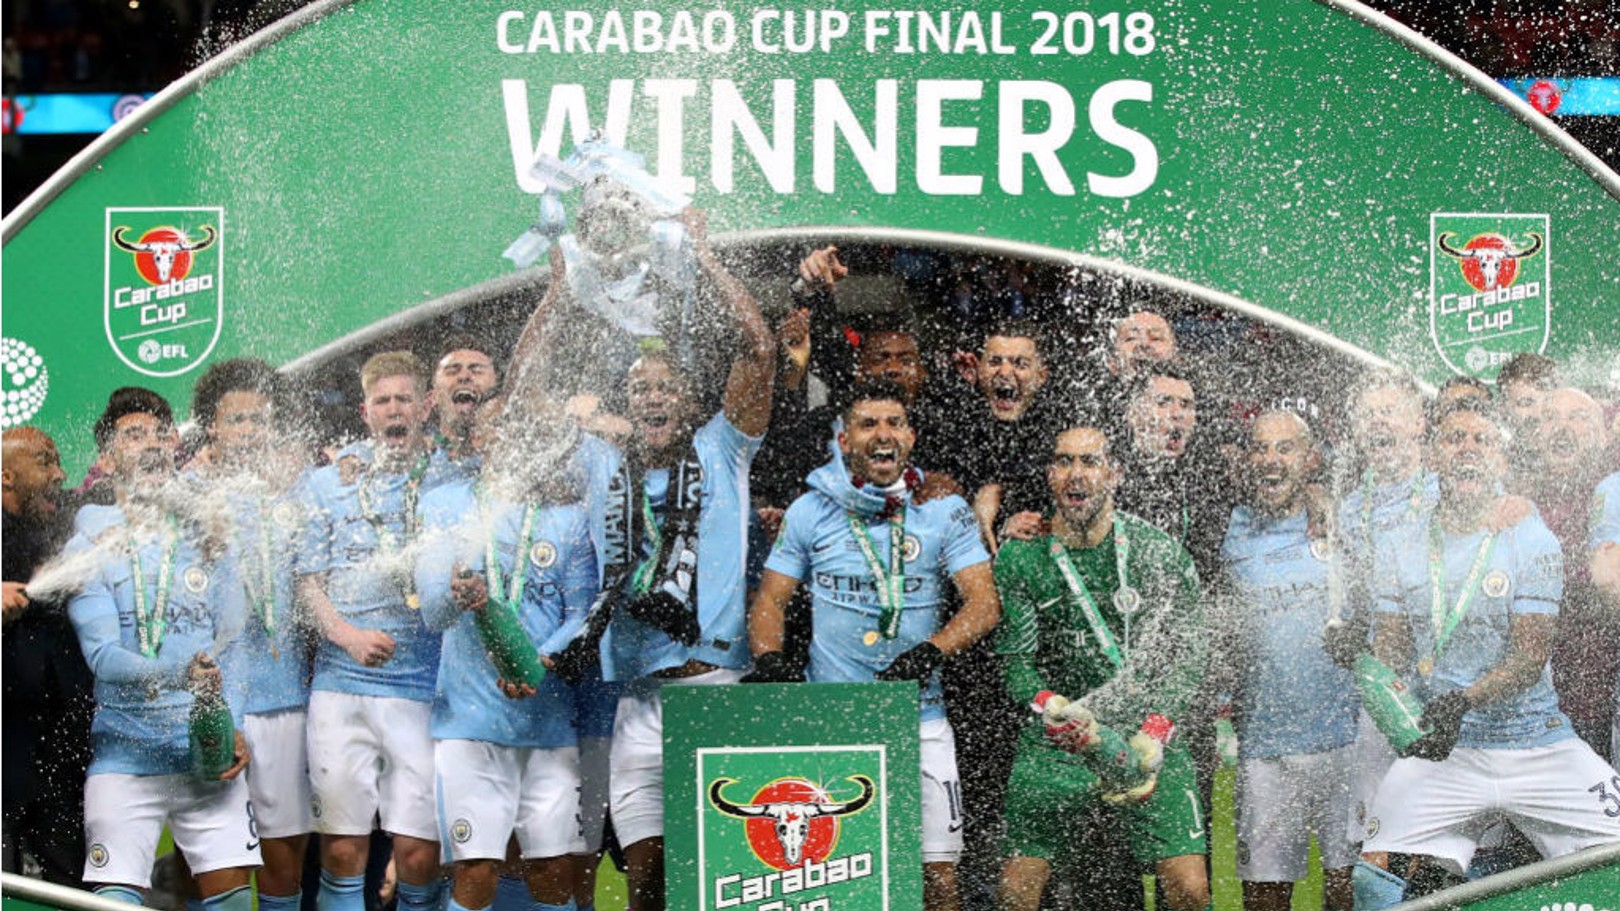 WEMBLEY WONDERS: Manchester City celebrate last season's Carabao Cup final triumph